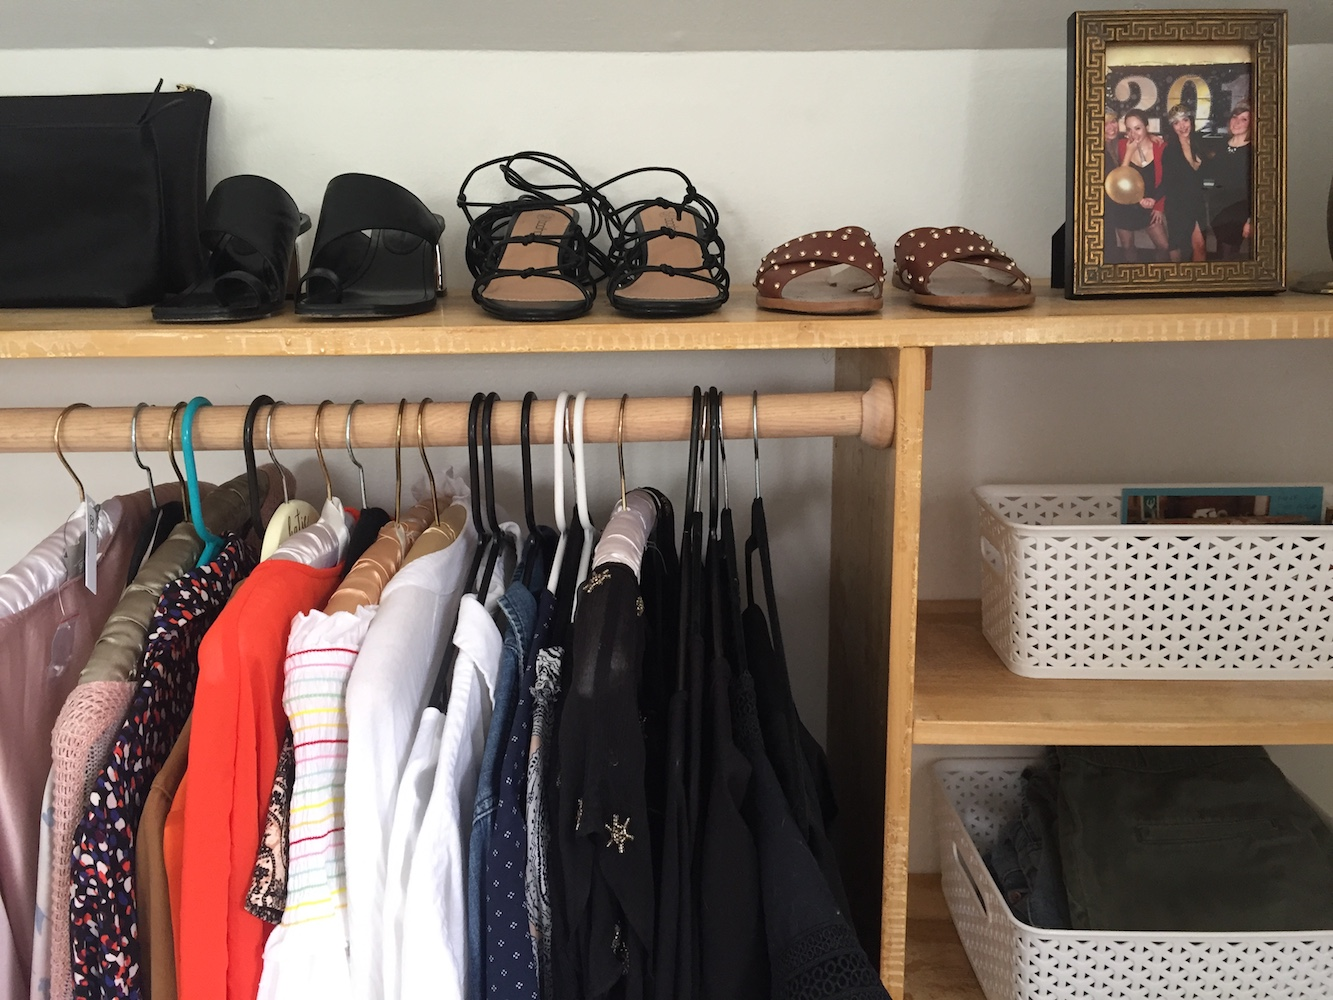 DIY Dressing Room: closet with clothes, shoes, and bins